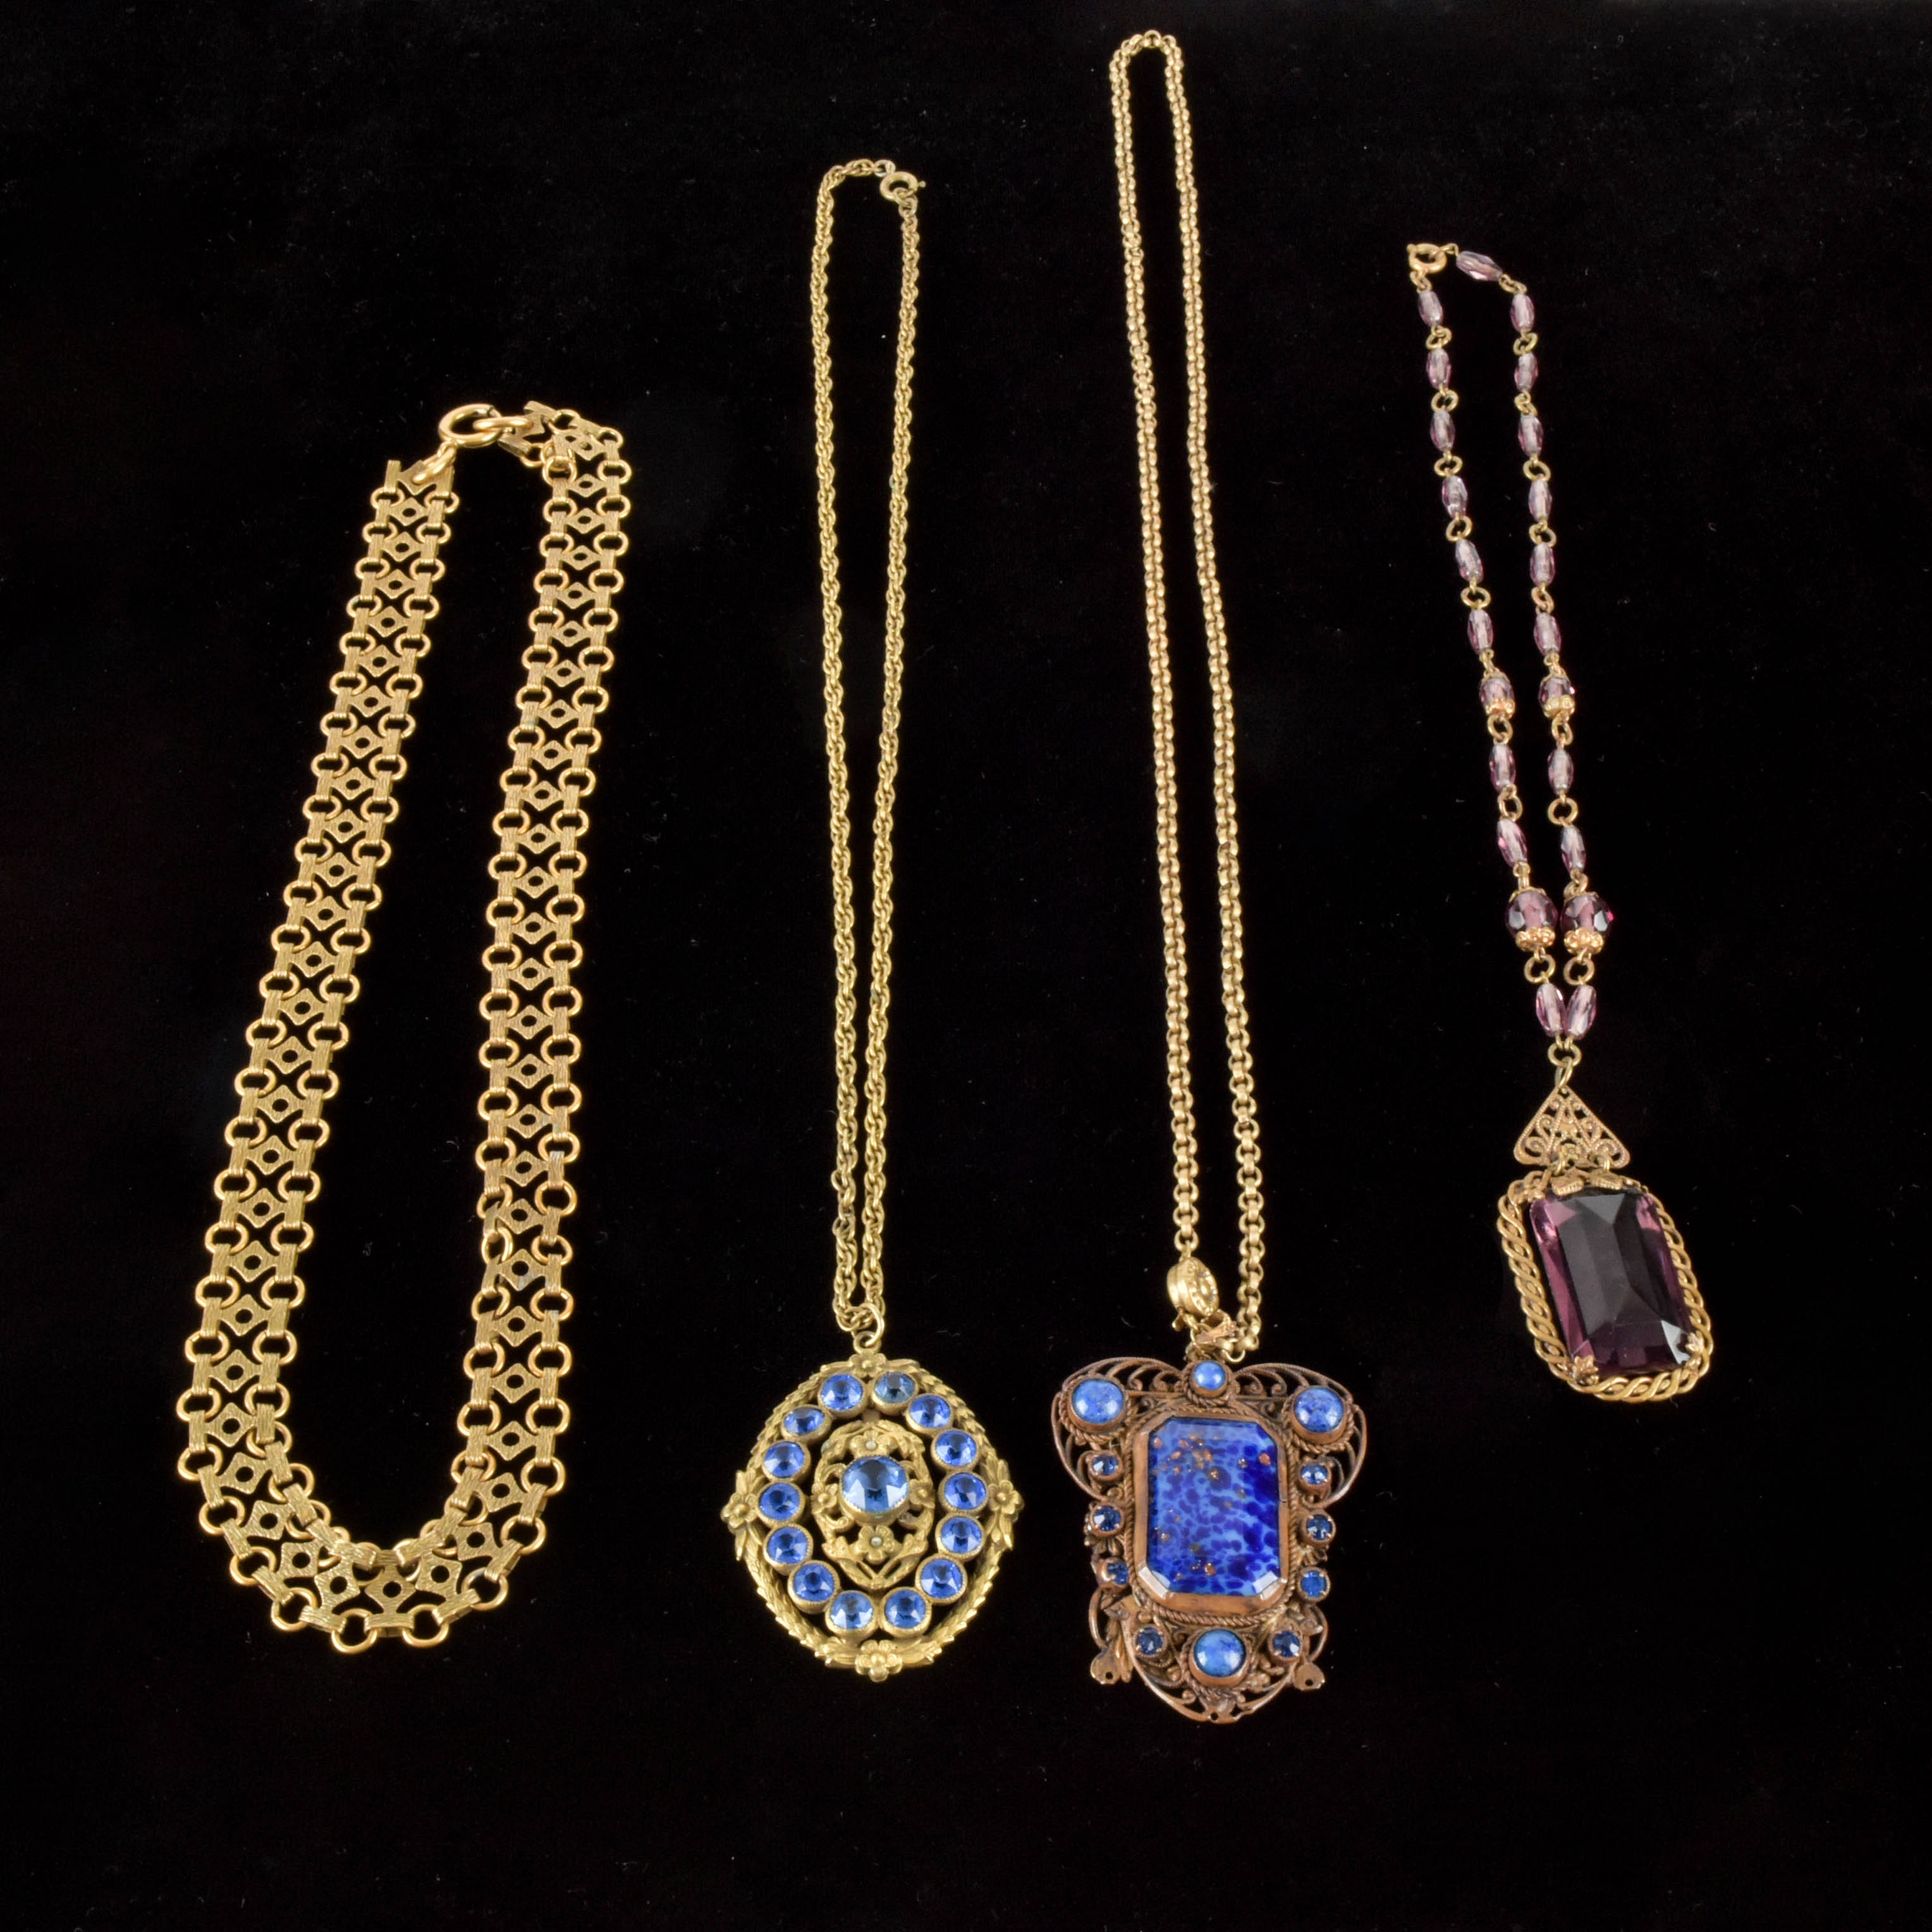 Four Gold Tone and Glass Vintage Necklaces